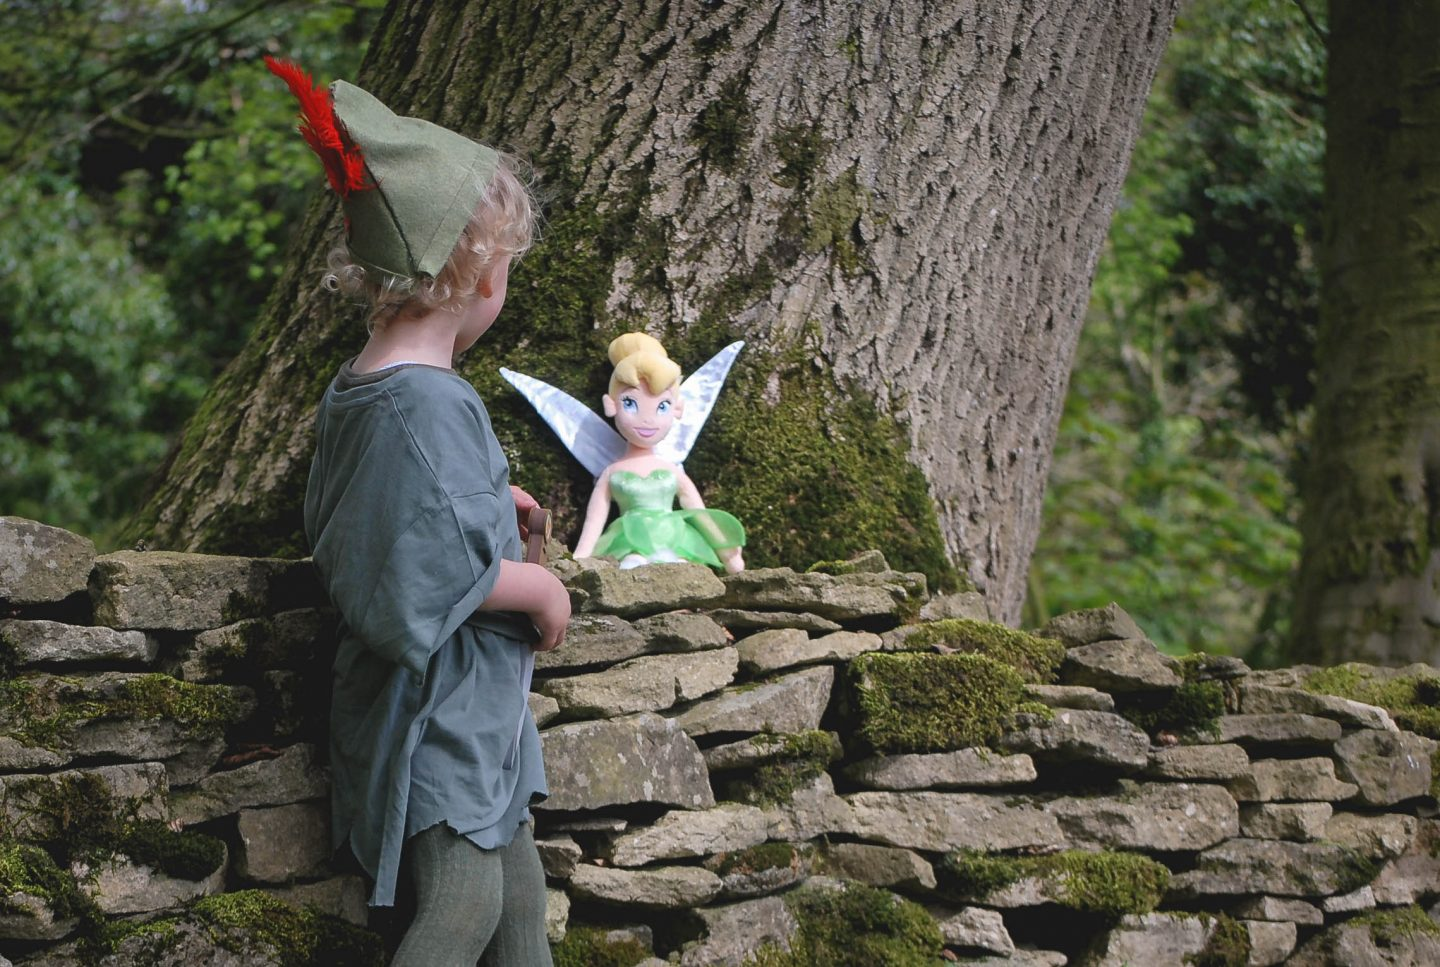 My daughter dressed as Disney's Peter Pan talking to Tinkerbell in the woods